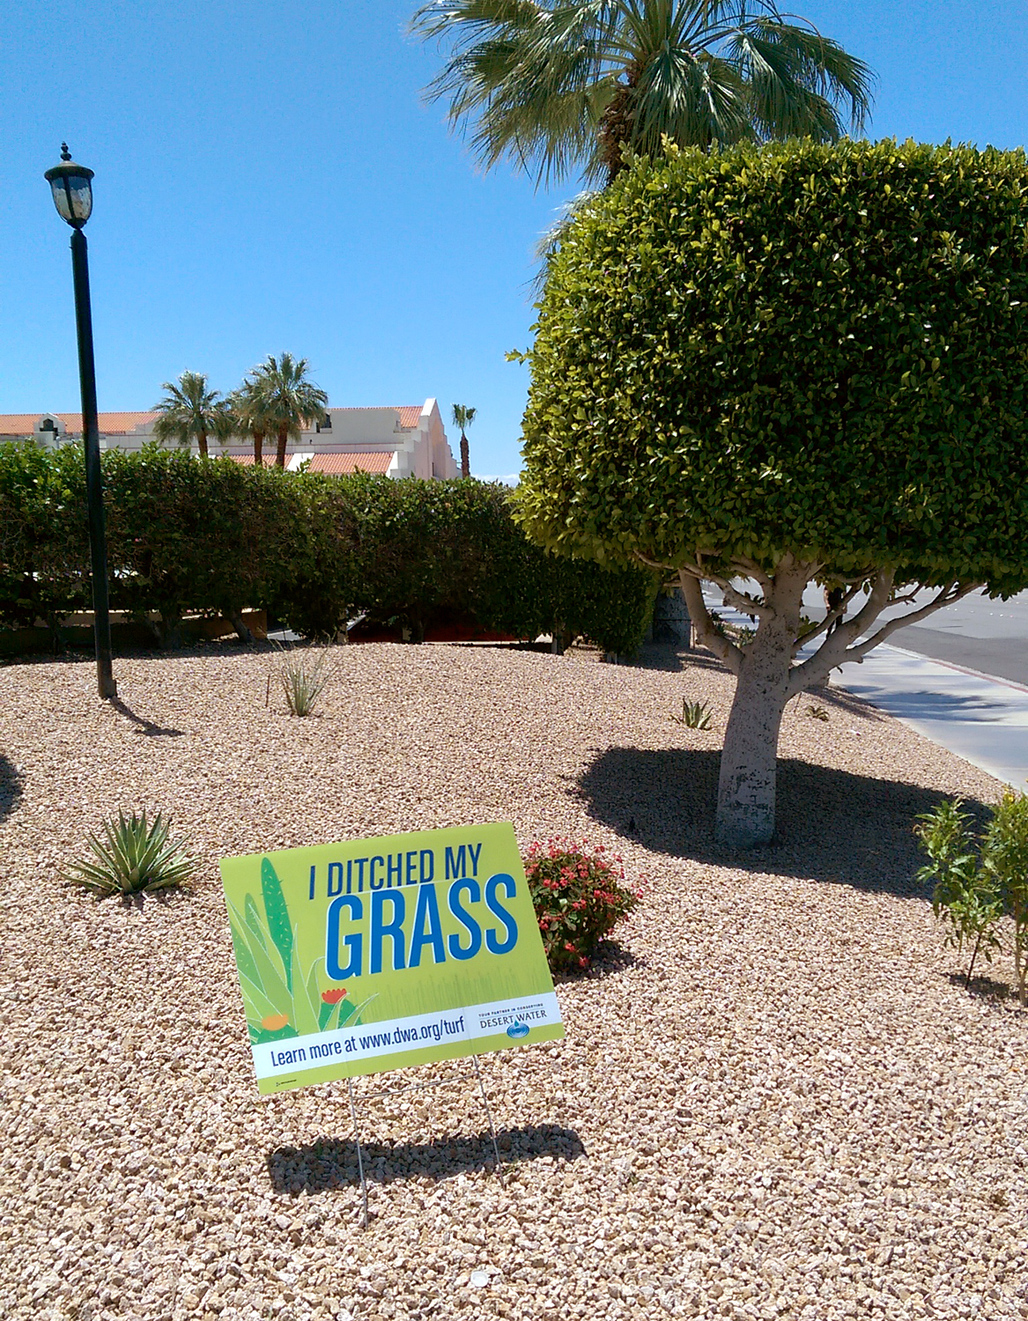 I ditched my grass sign in Palm Springs, California. (Photo: Alexander Walter)